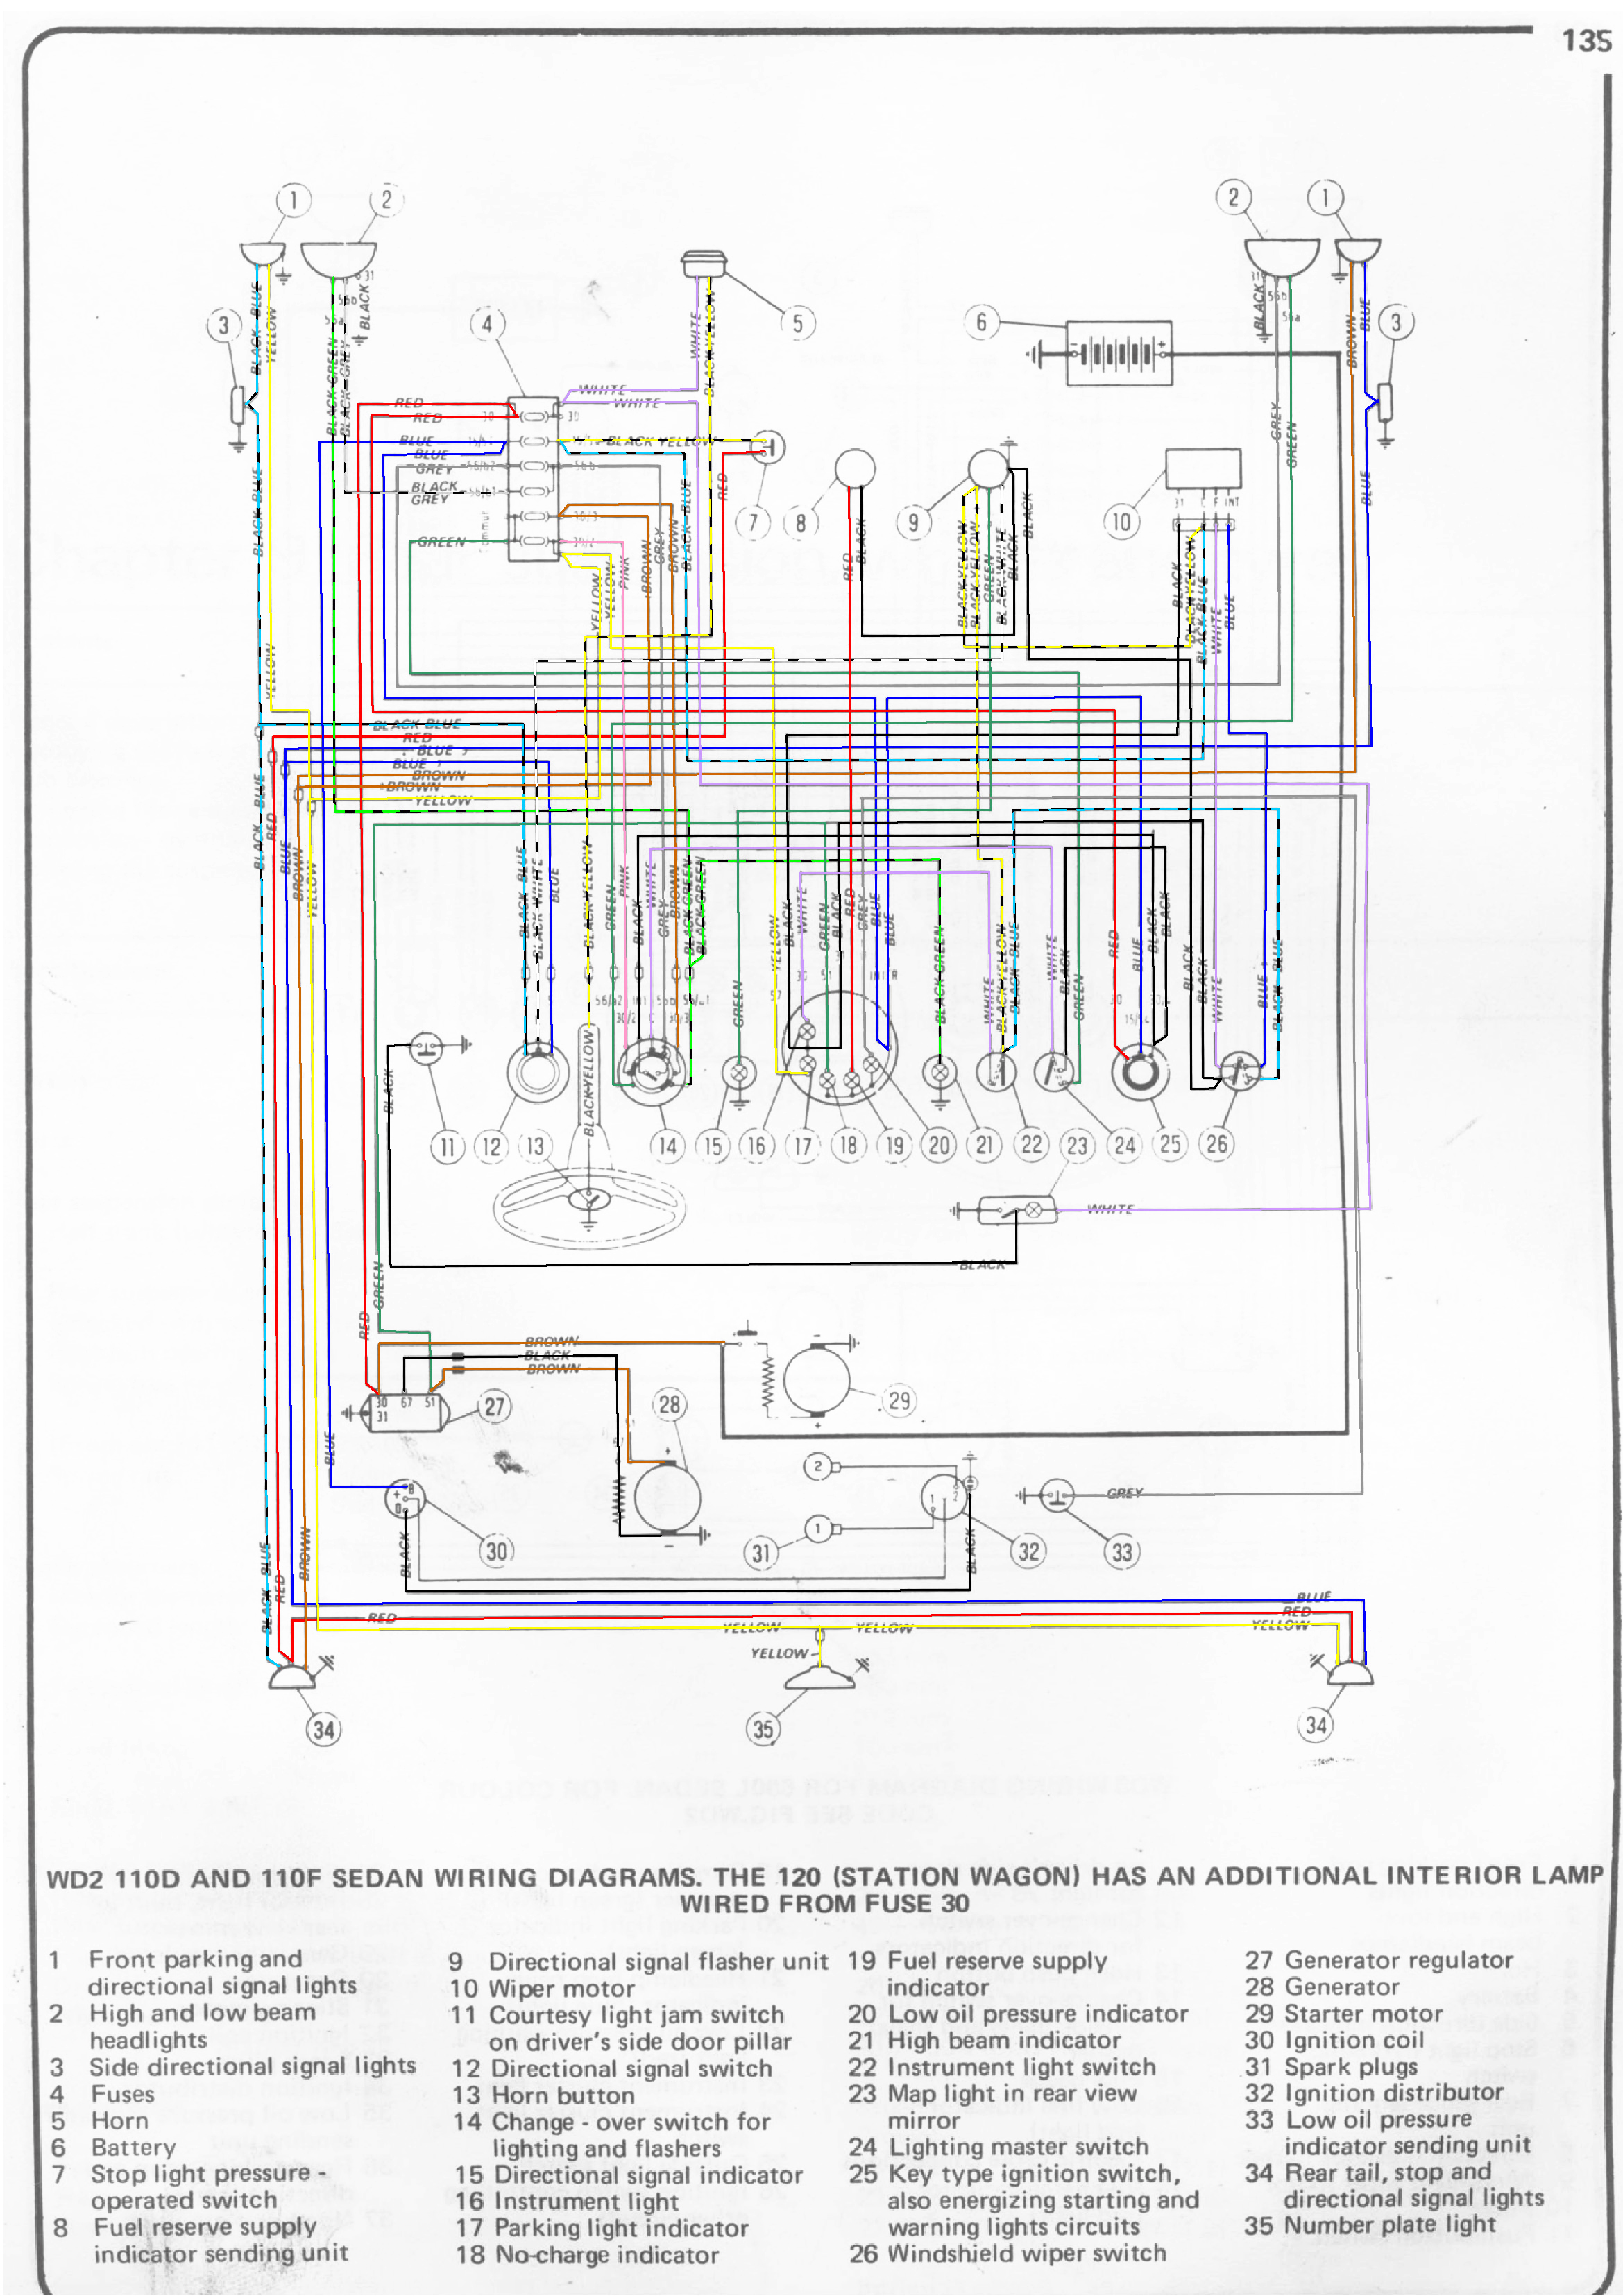 Renault kangoo abs wiring diagram wiring diagram awesome renault laguna wiring diagram component electrical system 2000 chevy abs module line diagram renault kangoo abs wiring diagram asfbconference2016 Choice Image